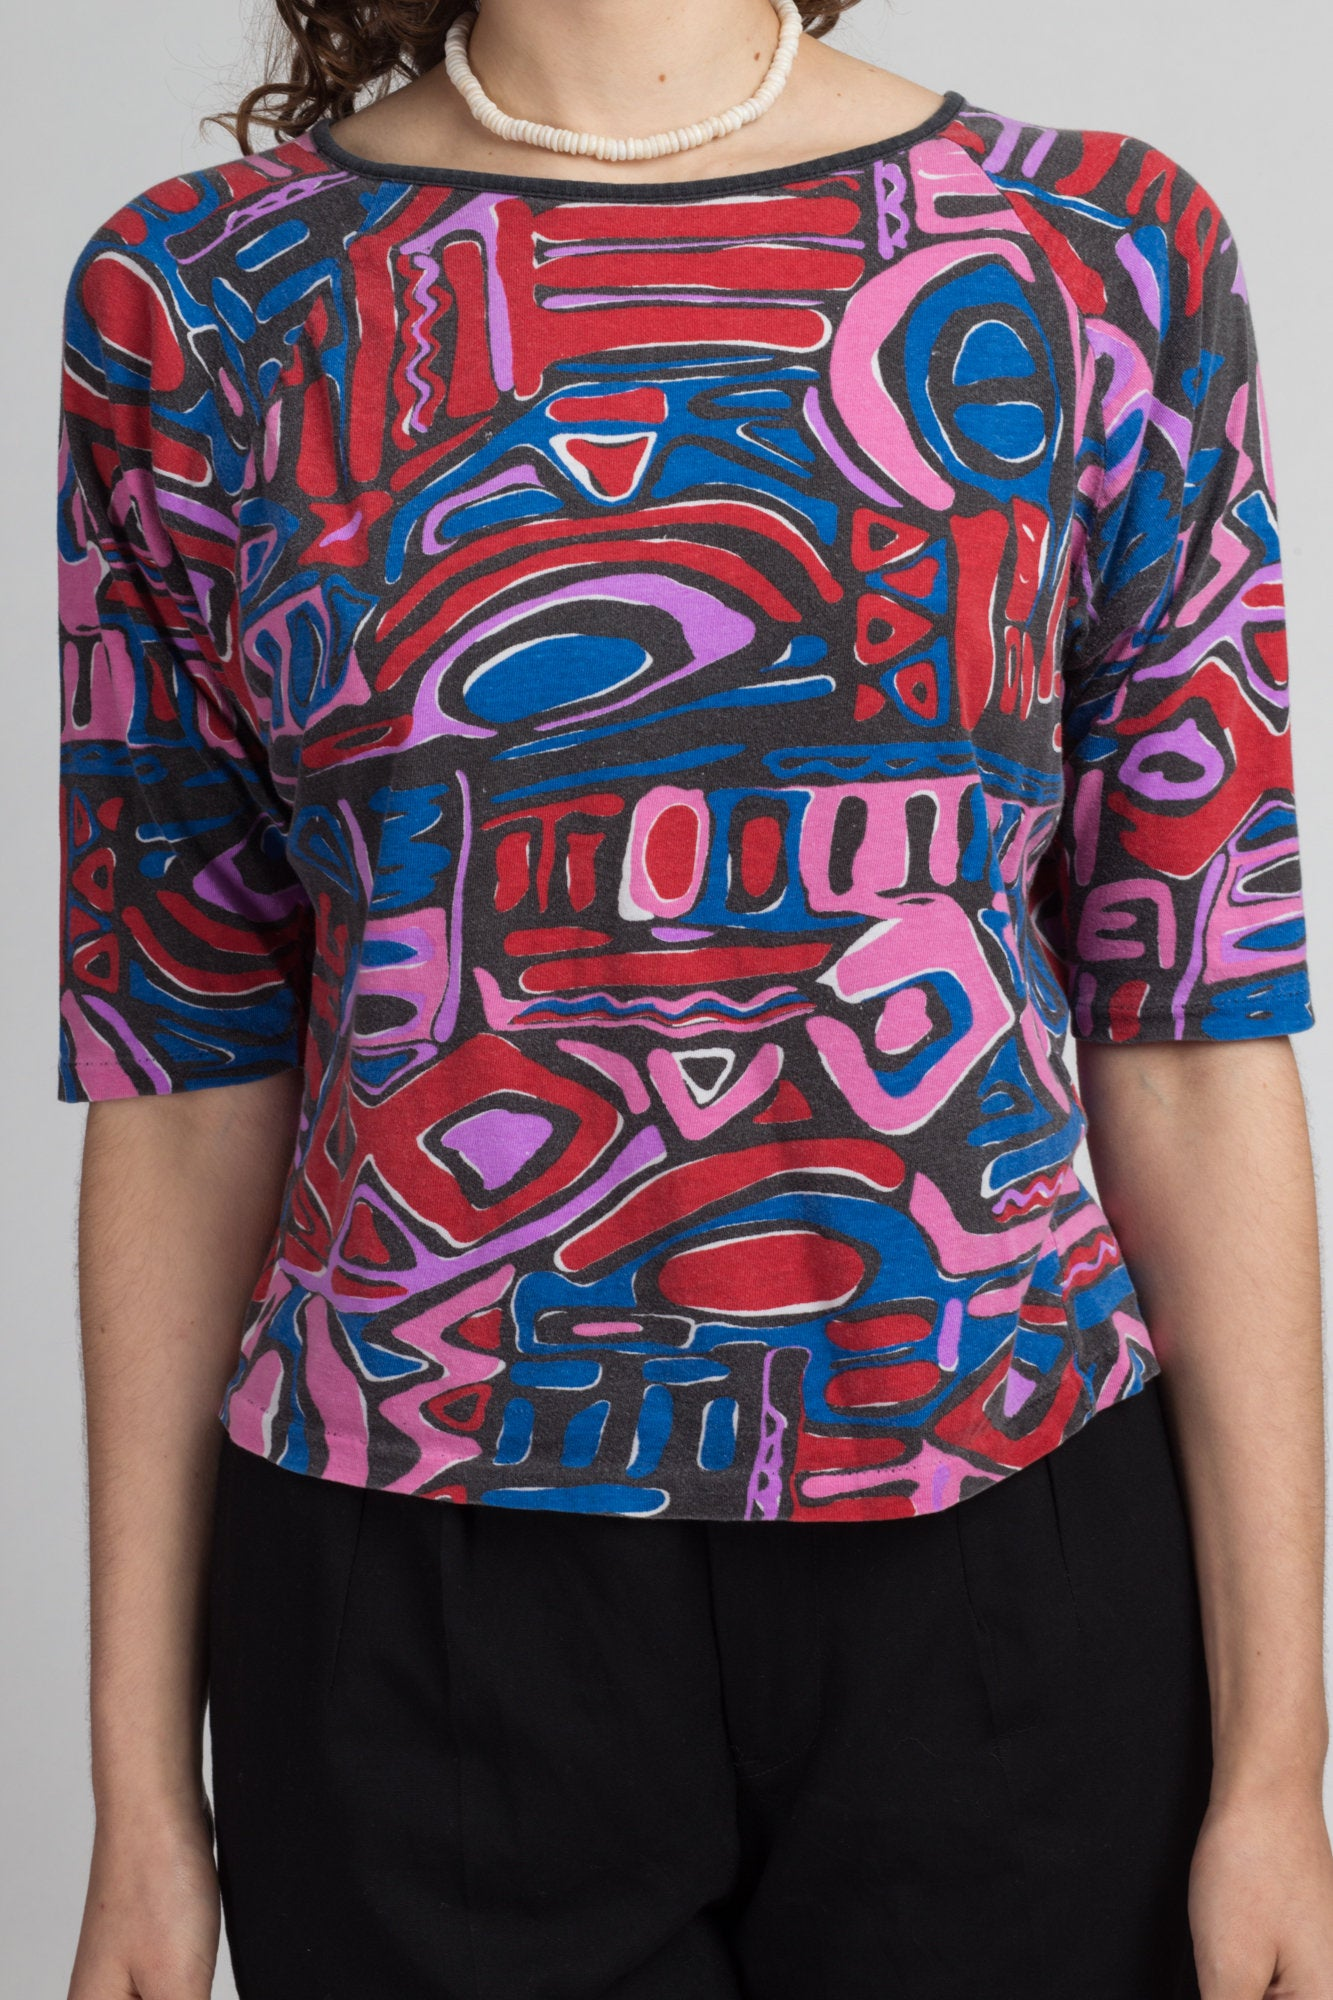 90s Keyhole Back Abstract Crop Top Vintage Pink Red Blue Print Batwing Blouse Medium